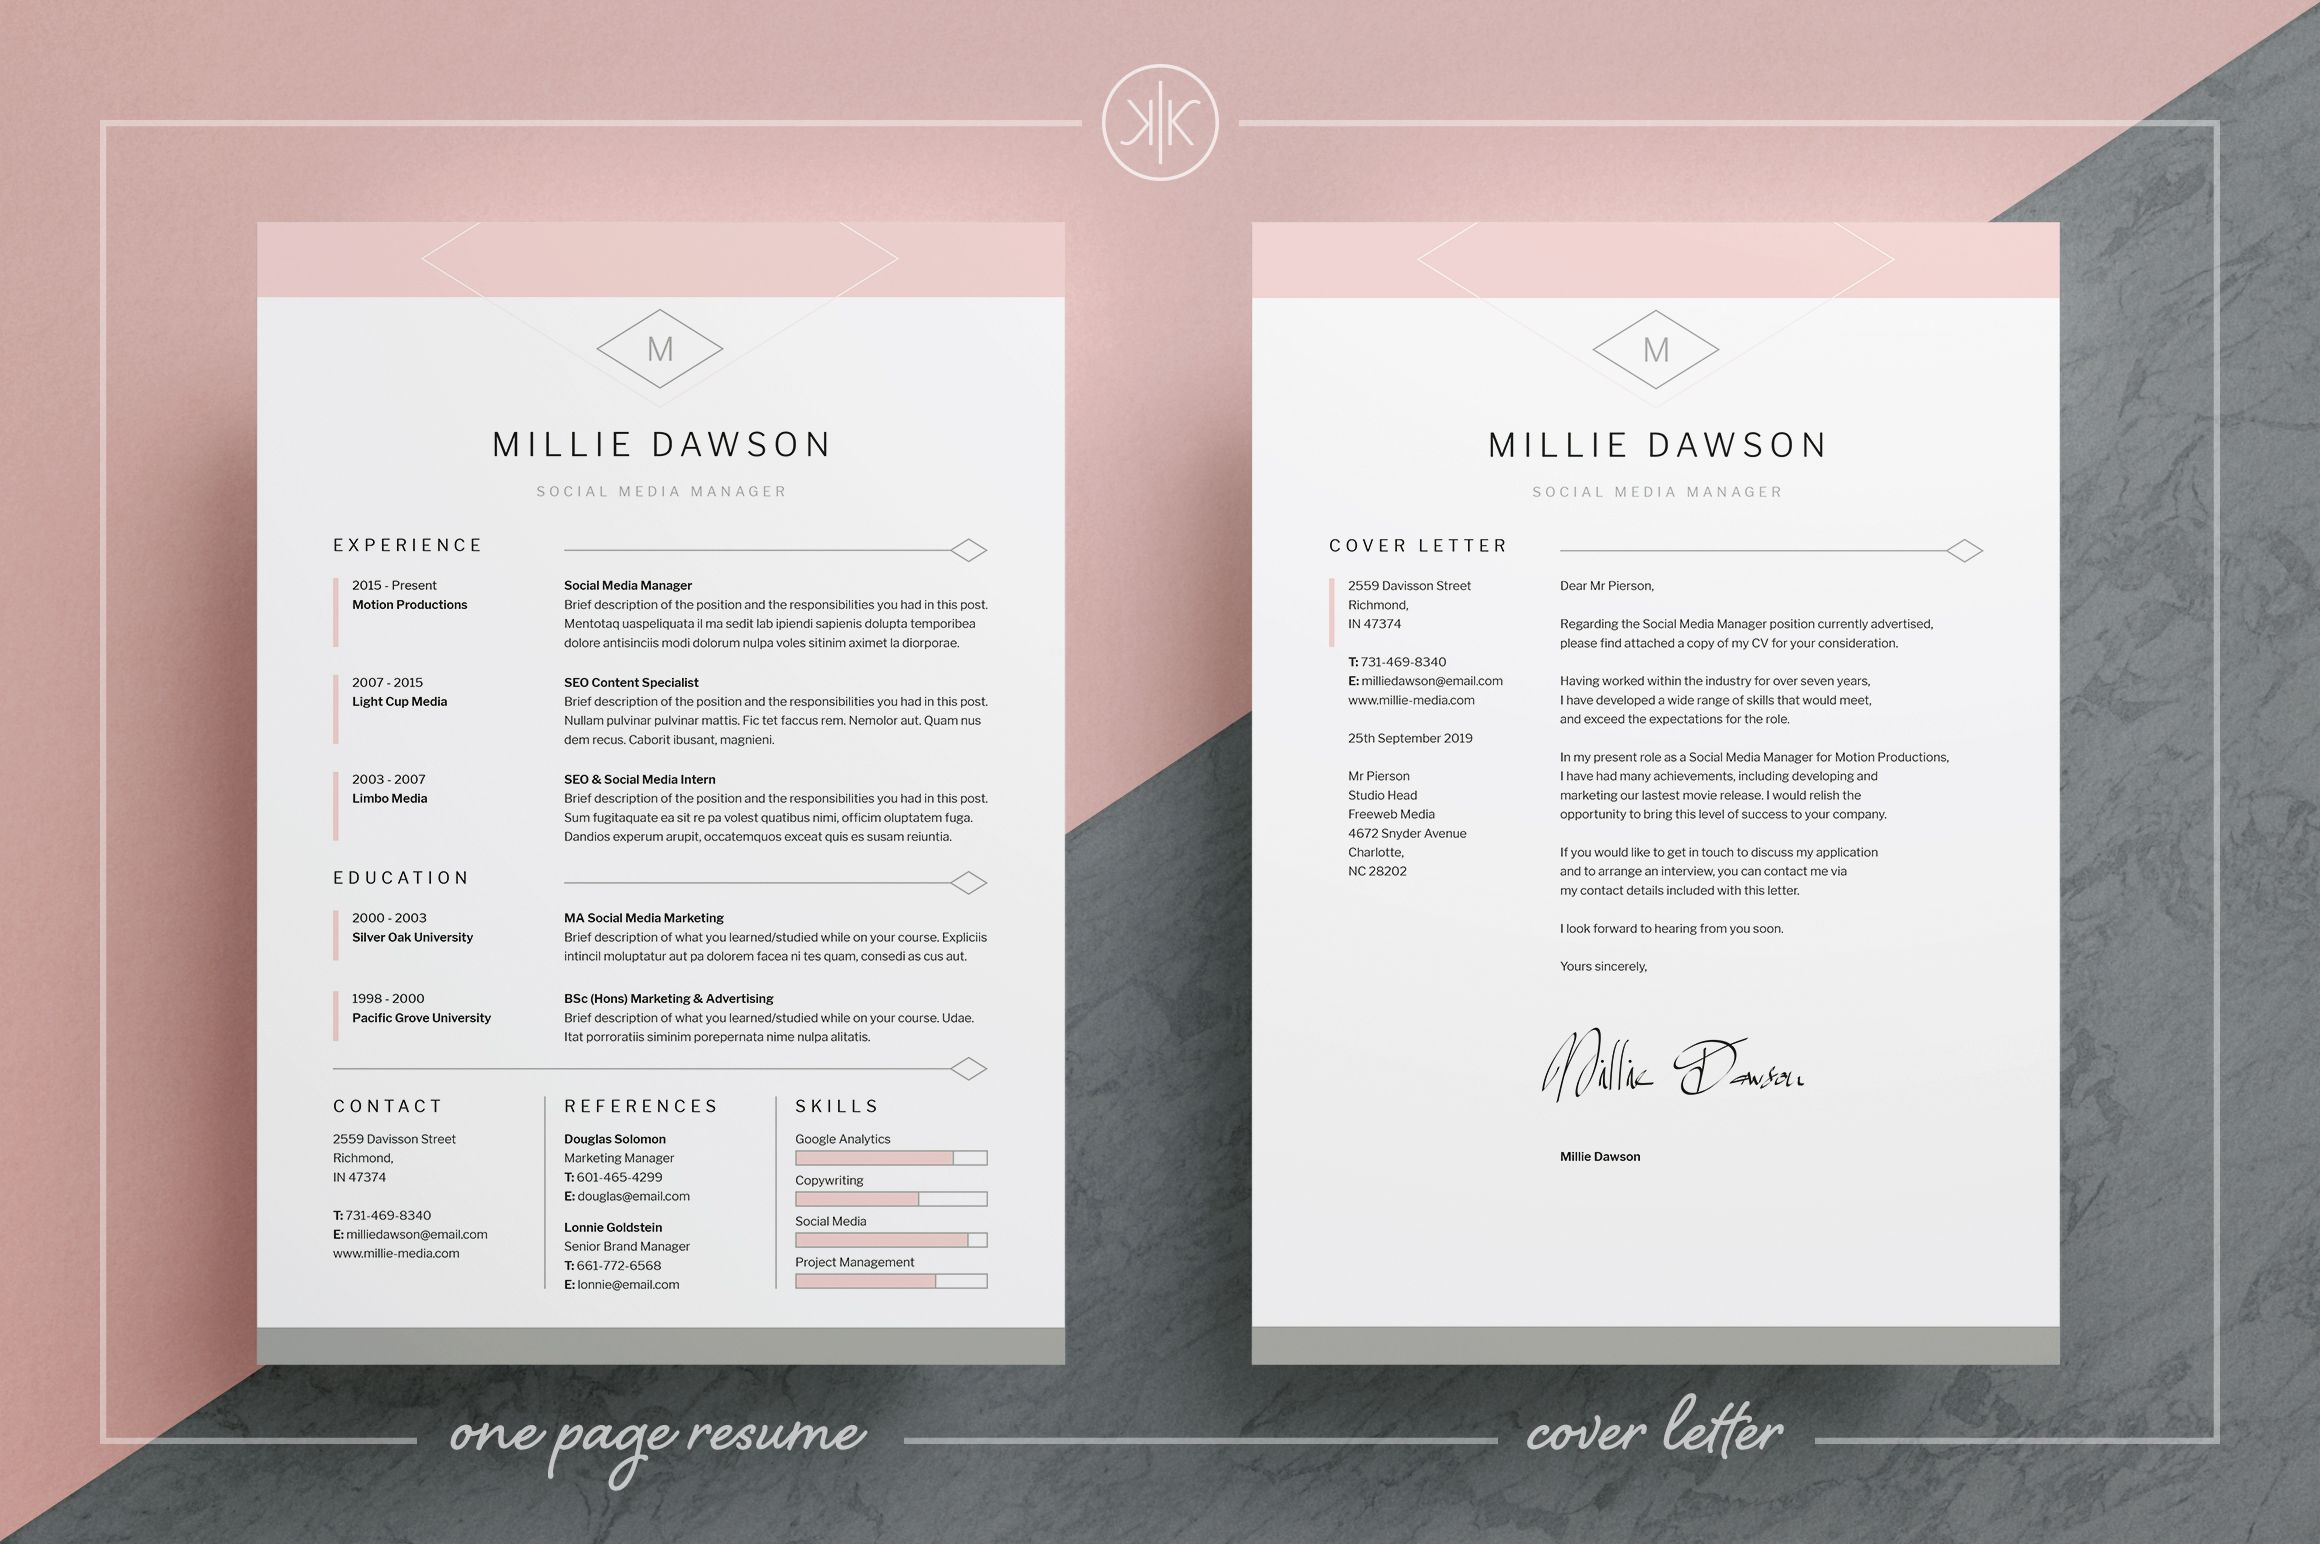 Microsoft Word Templates Cv%0A Professional Resume CV   Cover letter   Resume Template   CV Template    Cover Letter